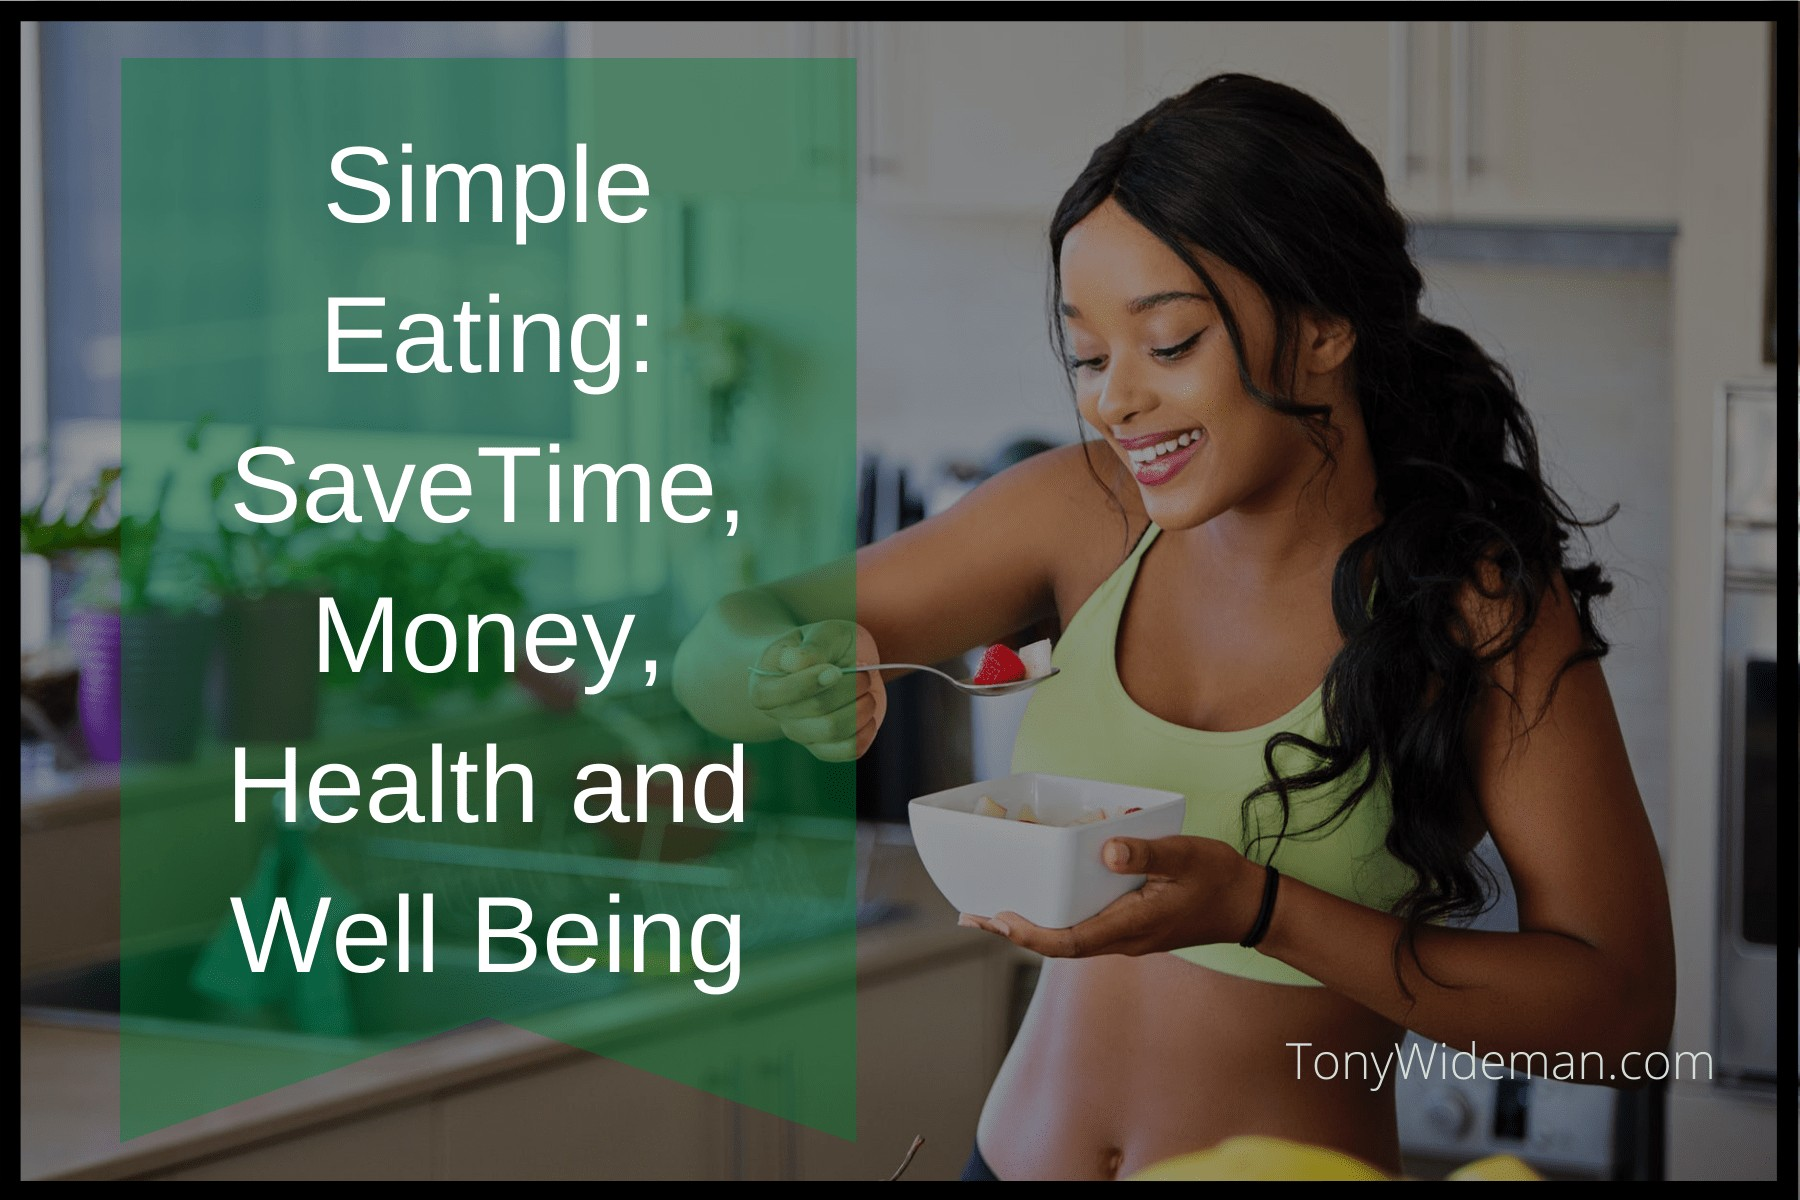 Simple Eating: Save Time, Money, Health and Well Being